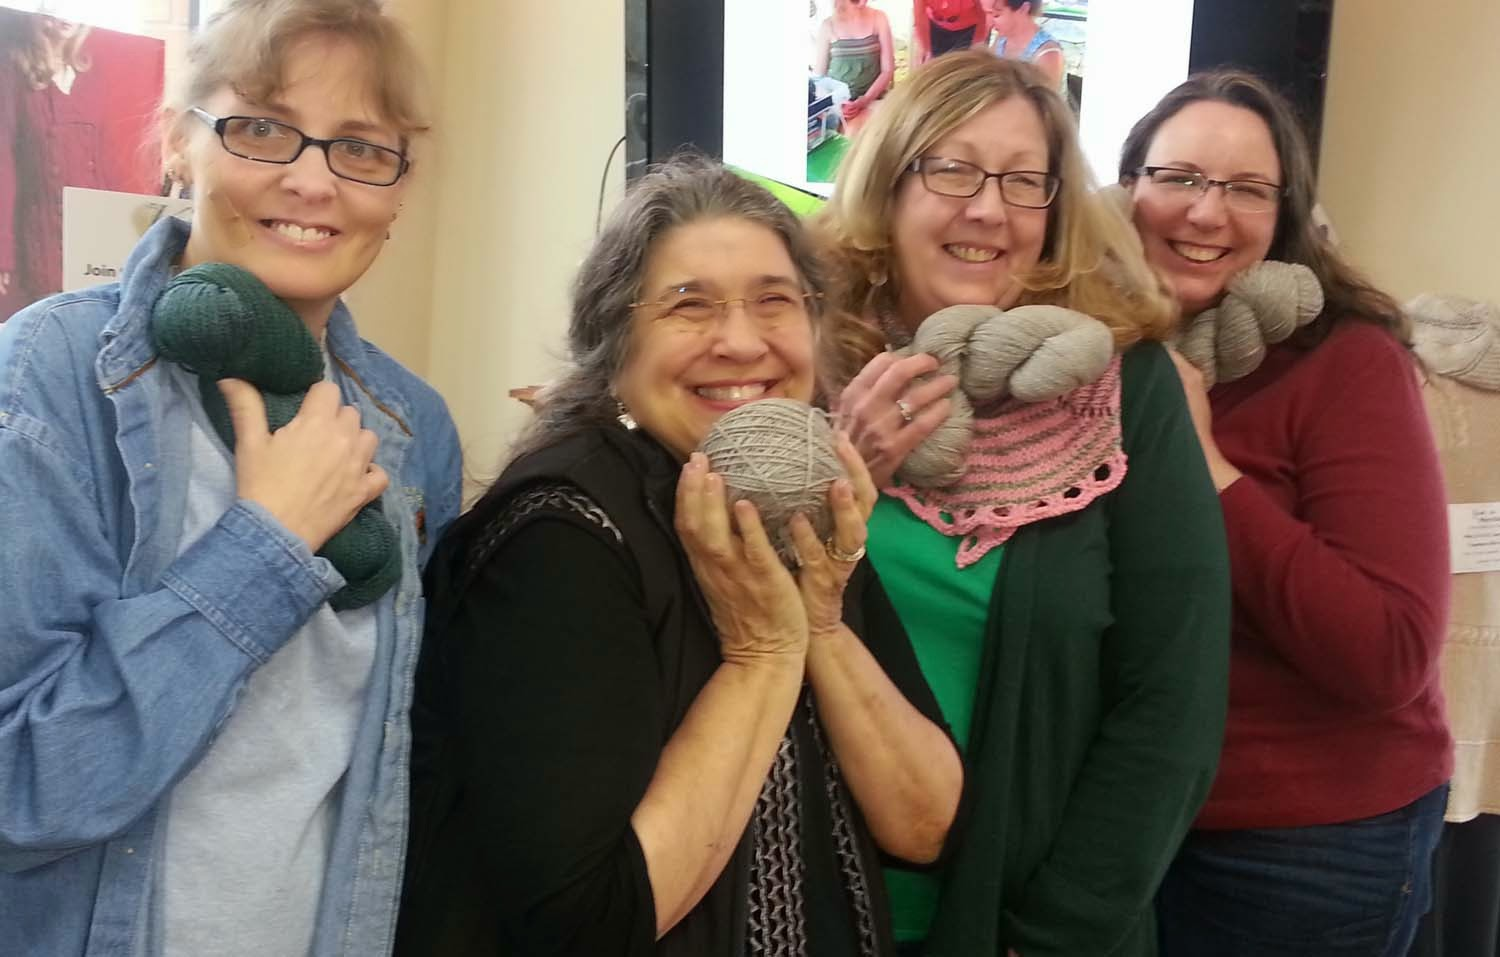 Four knitters hold skeins of luxury yarn available at The Knitting Boutique